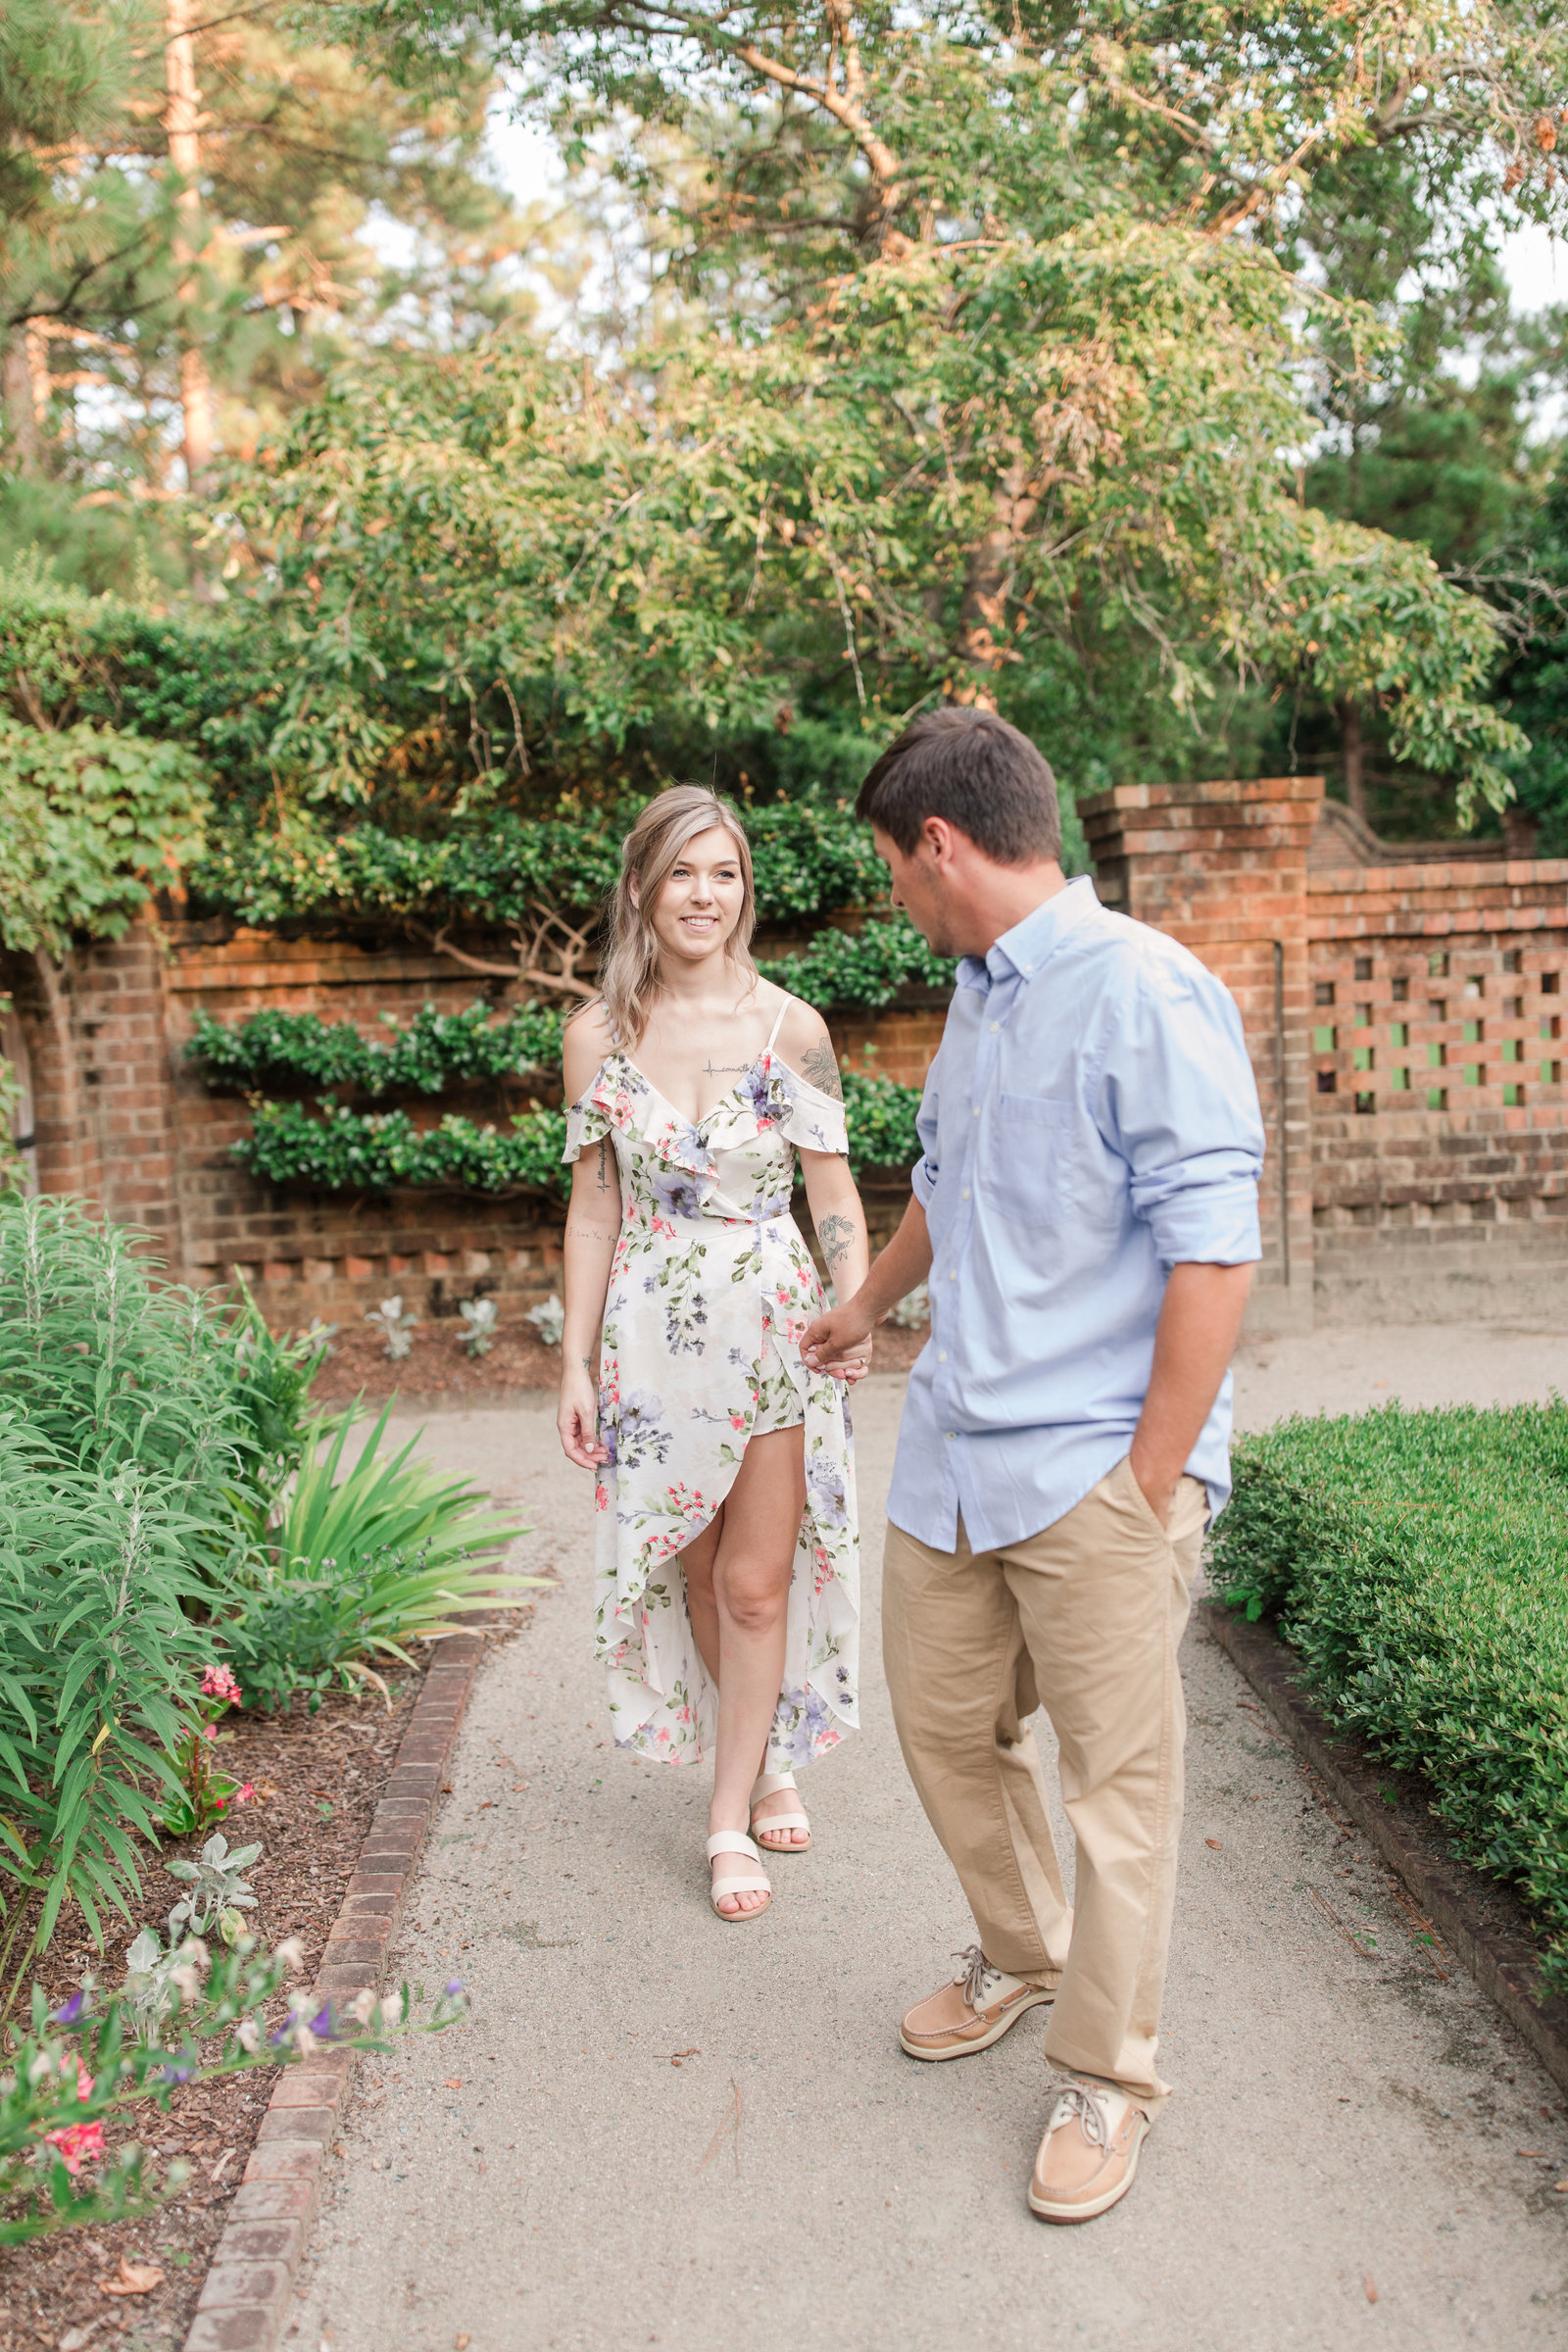 Jennifer B Photography-Sandhills Horticultural Gardens Engagement-Pinehurst NC-Cody and Kayla-2019-0139